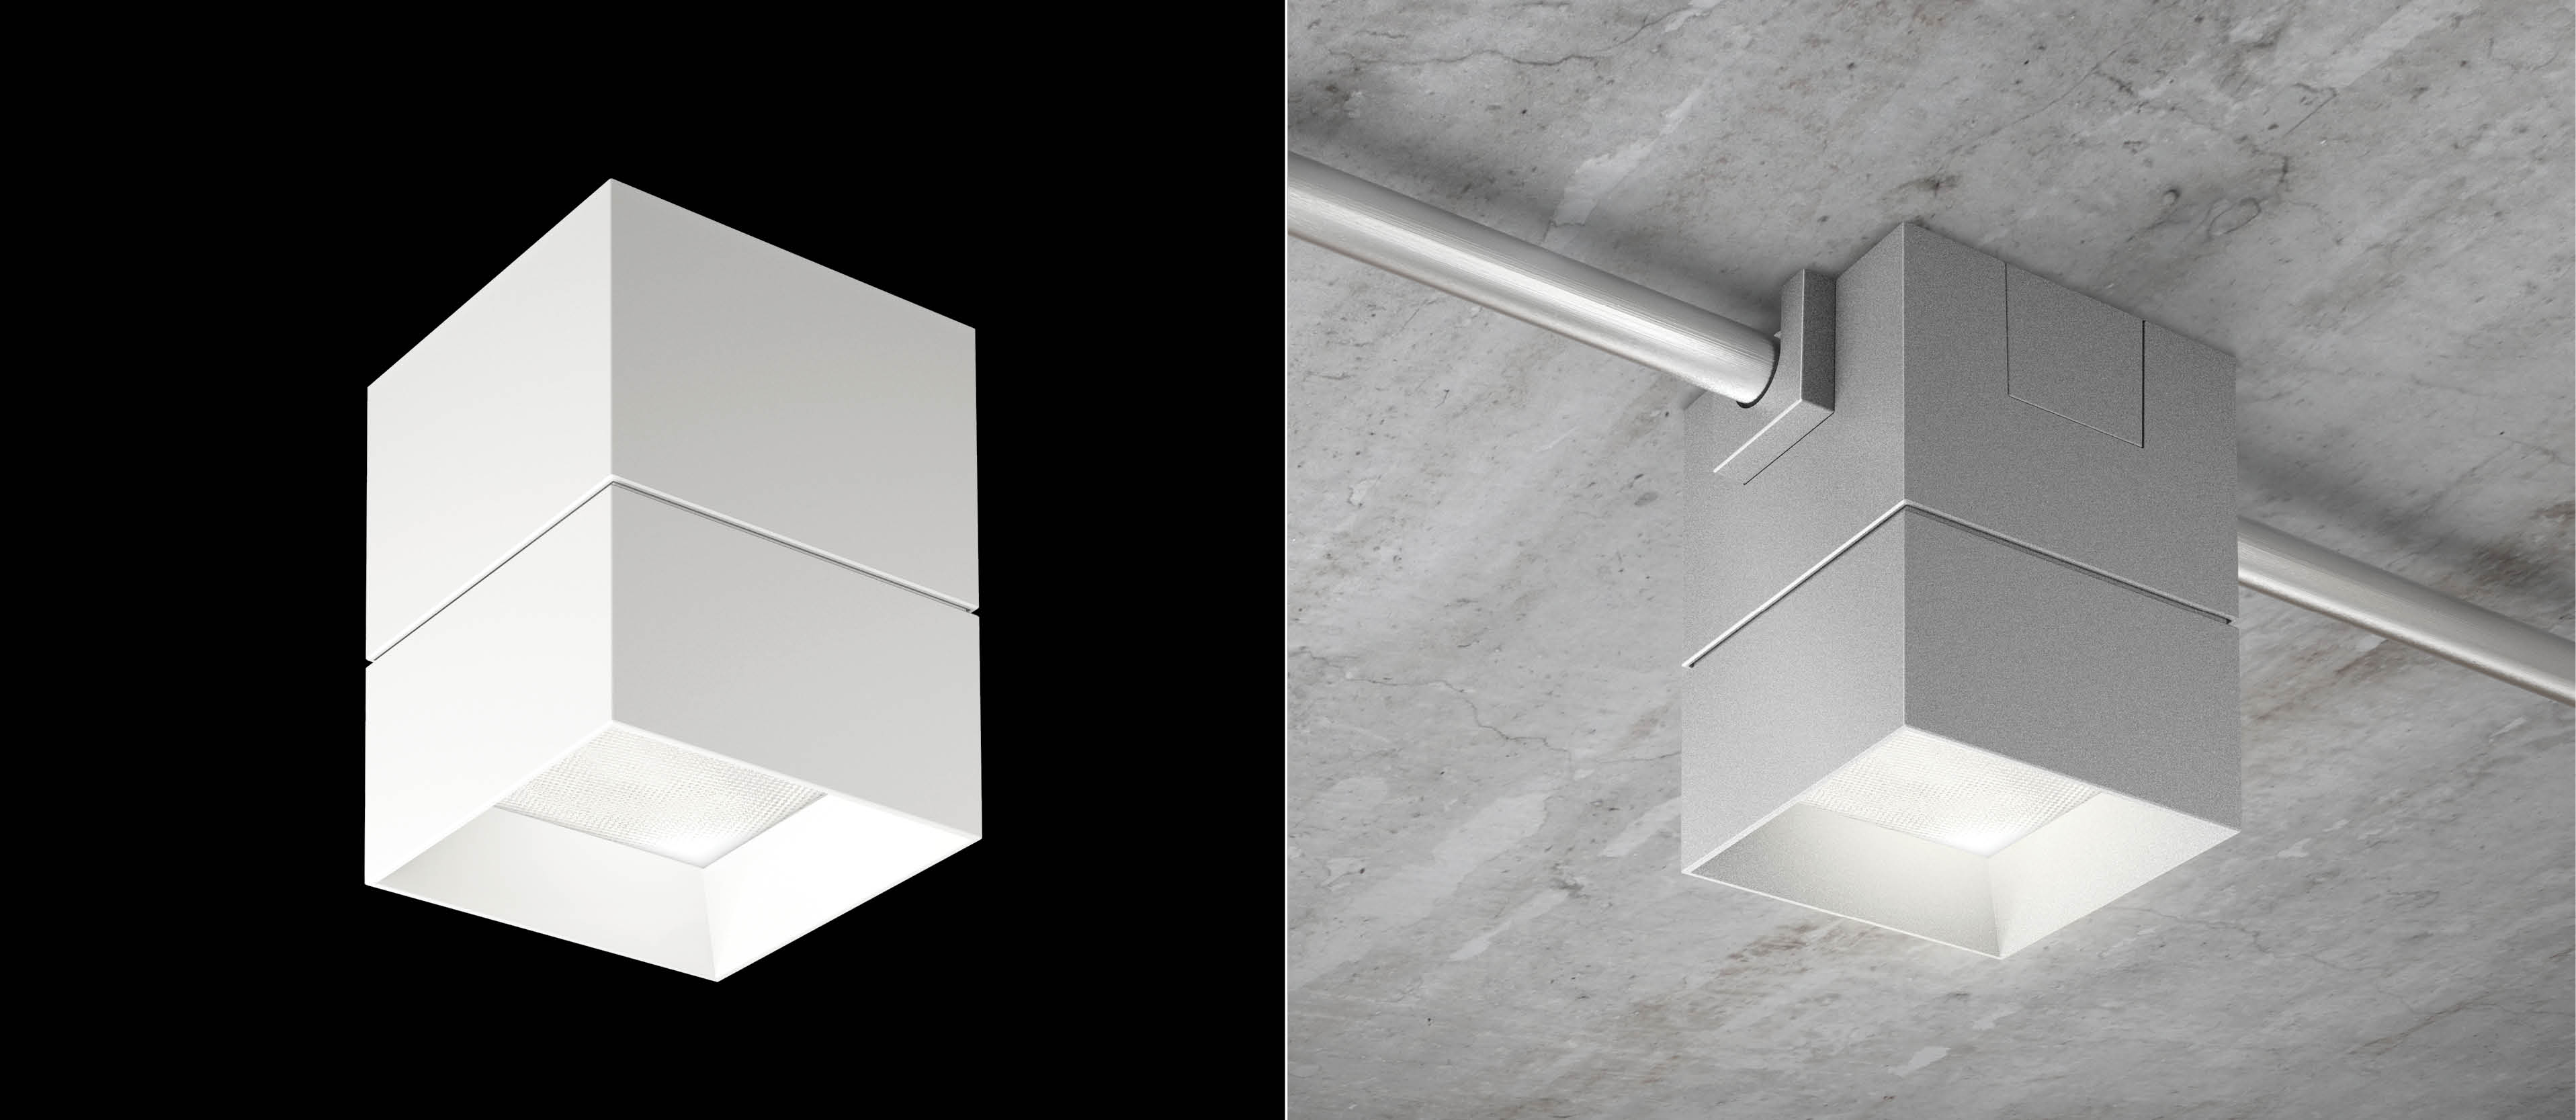 Beveled block led surface mount pendant fixtures for open beveled block is a 5 x 5 geometric light fixture specifically designed for use with surface mounted conduit and junction boxes in exposed or industrial arubaitofo Images